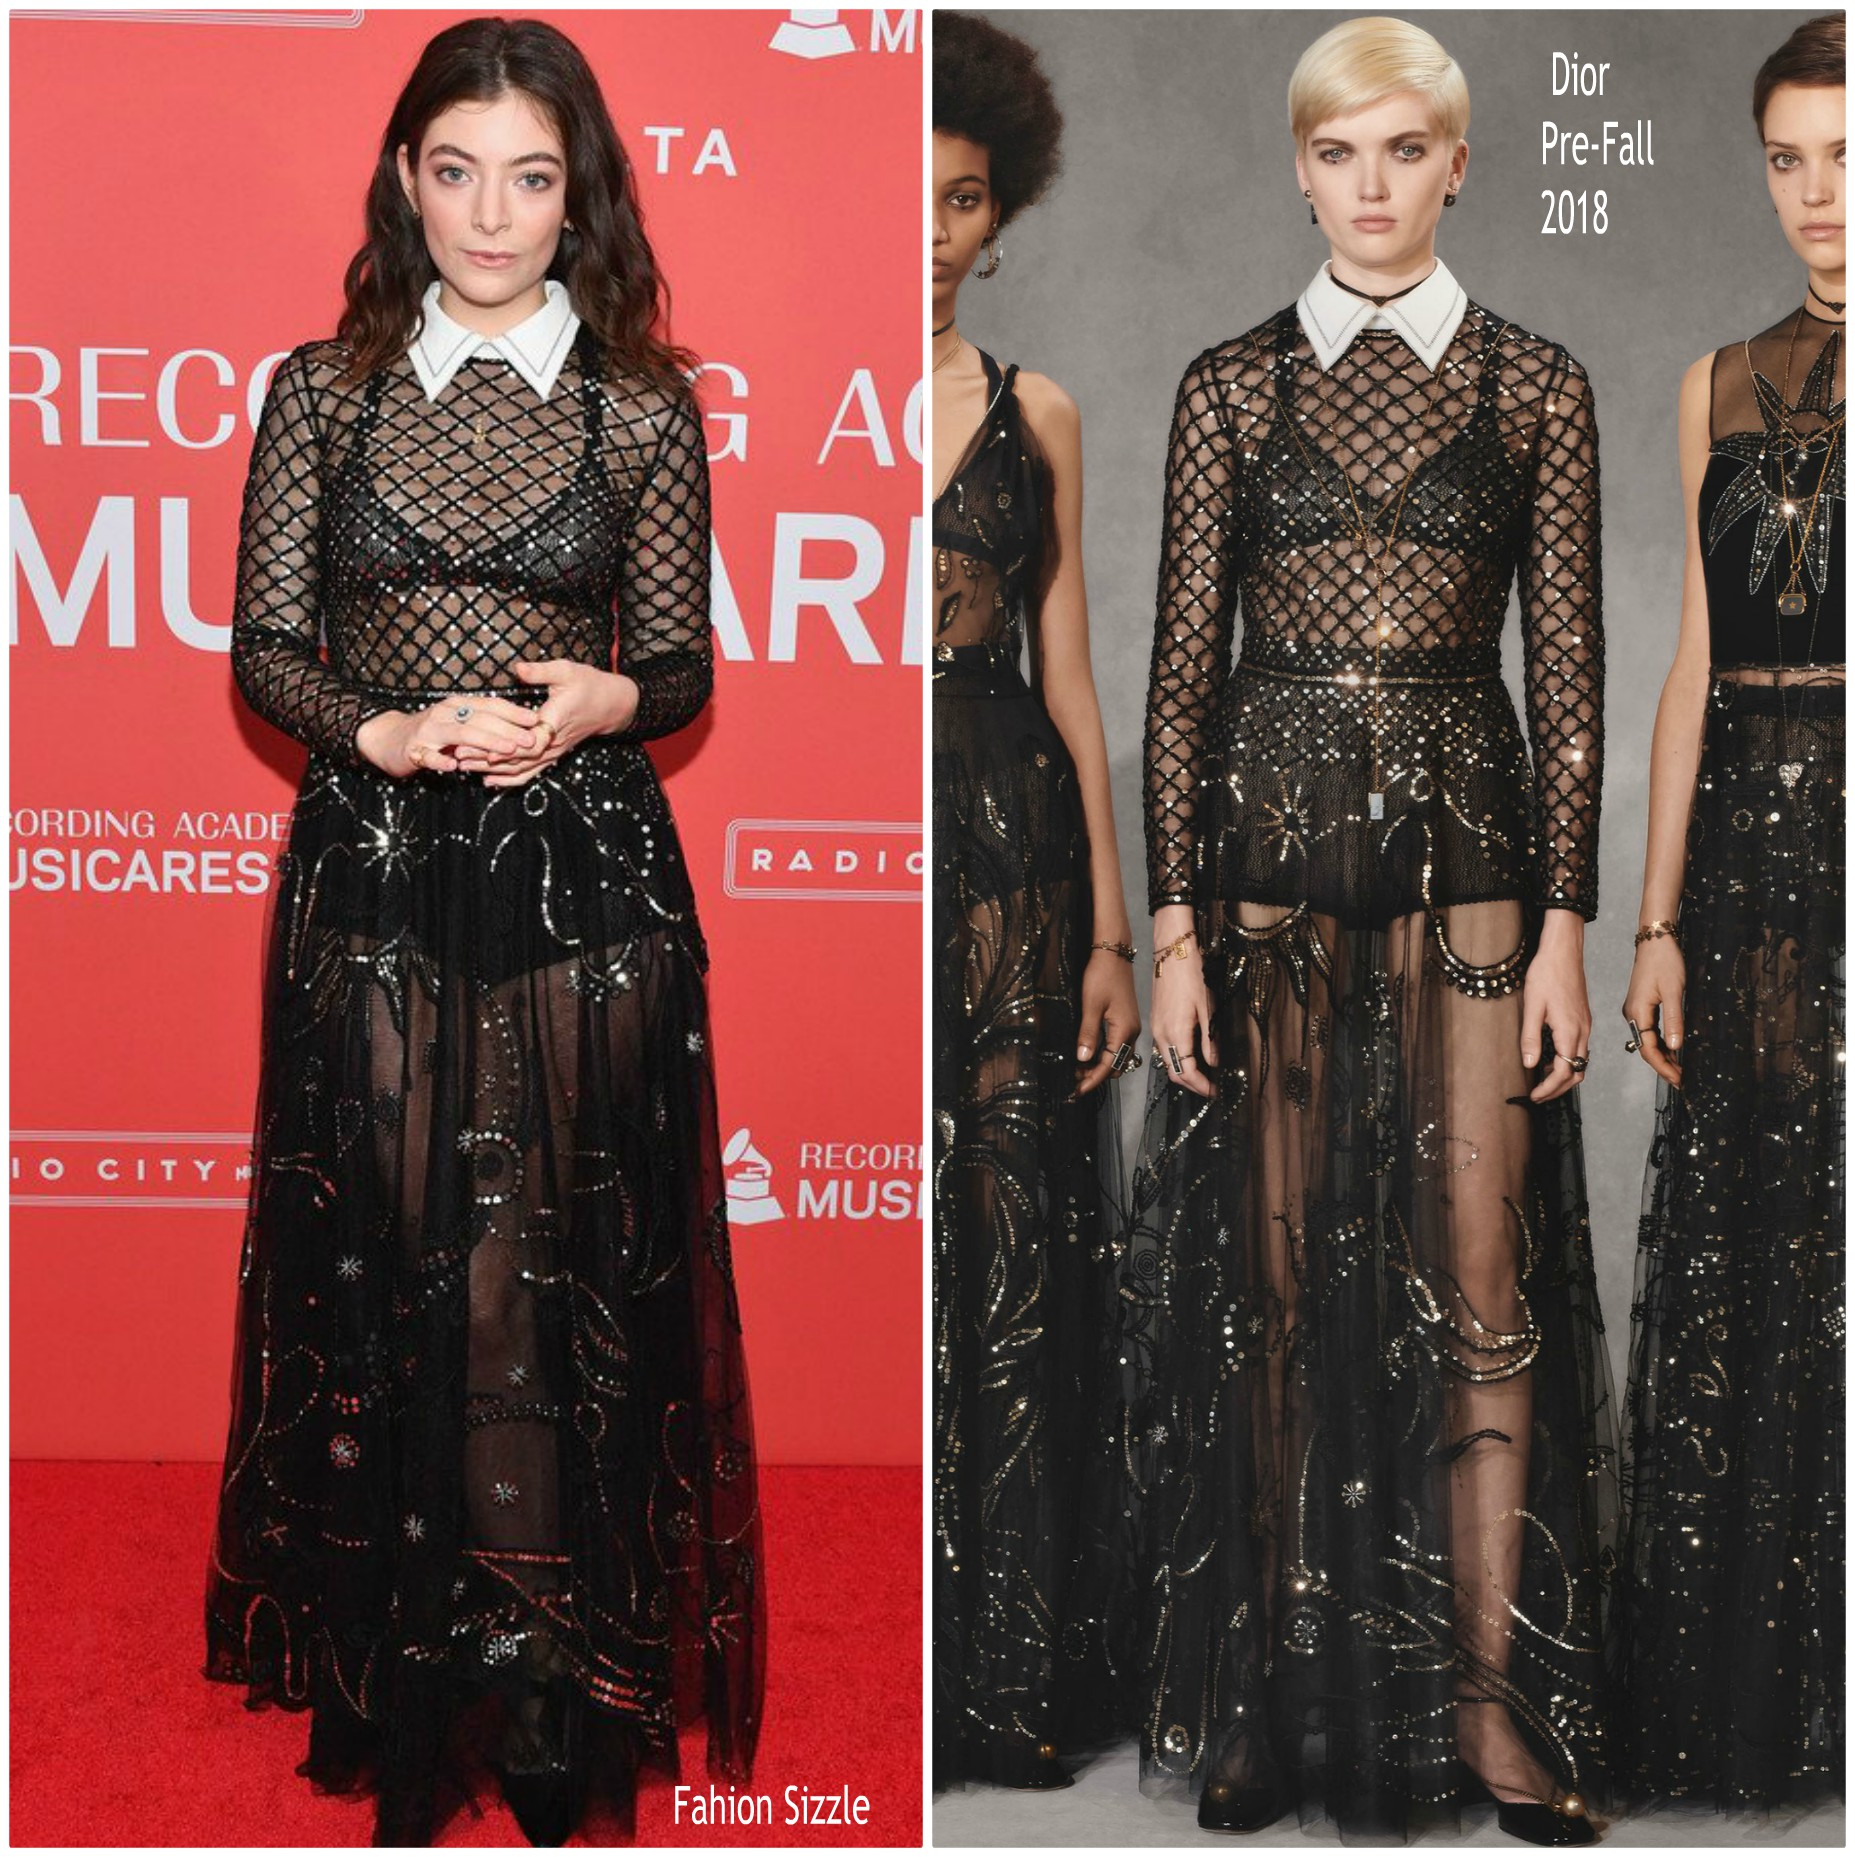 lorde-in-christian-dior-2018-musicares-gala-in-new-york